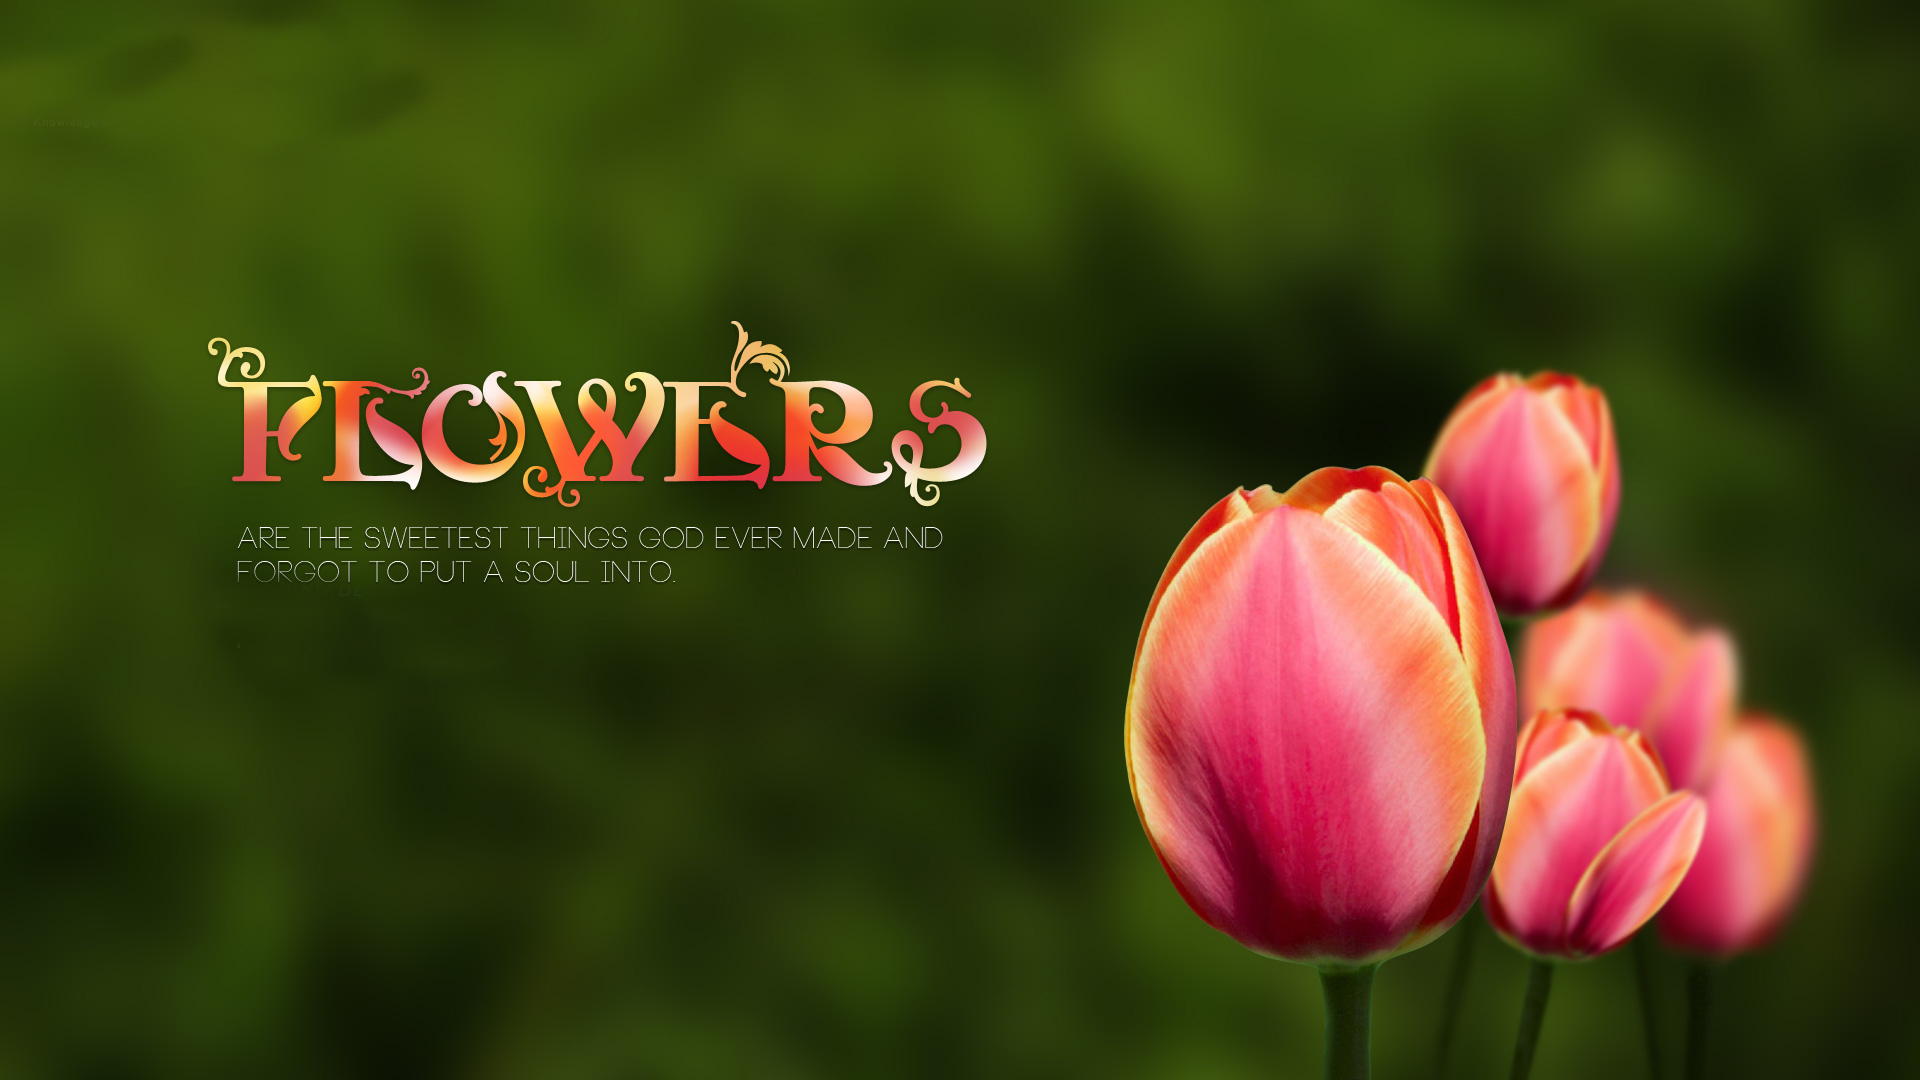 Superb Flower Wallpaper Quotes 22 Background Awesome Design